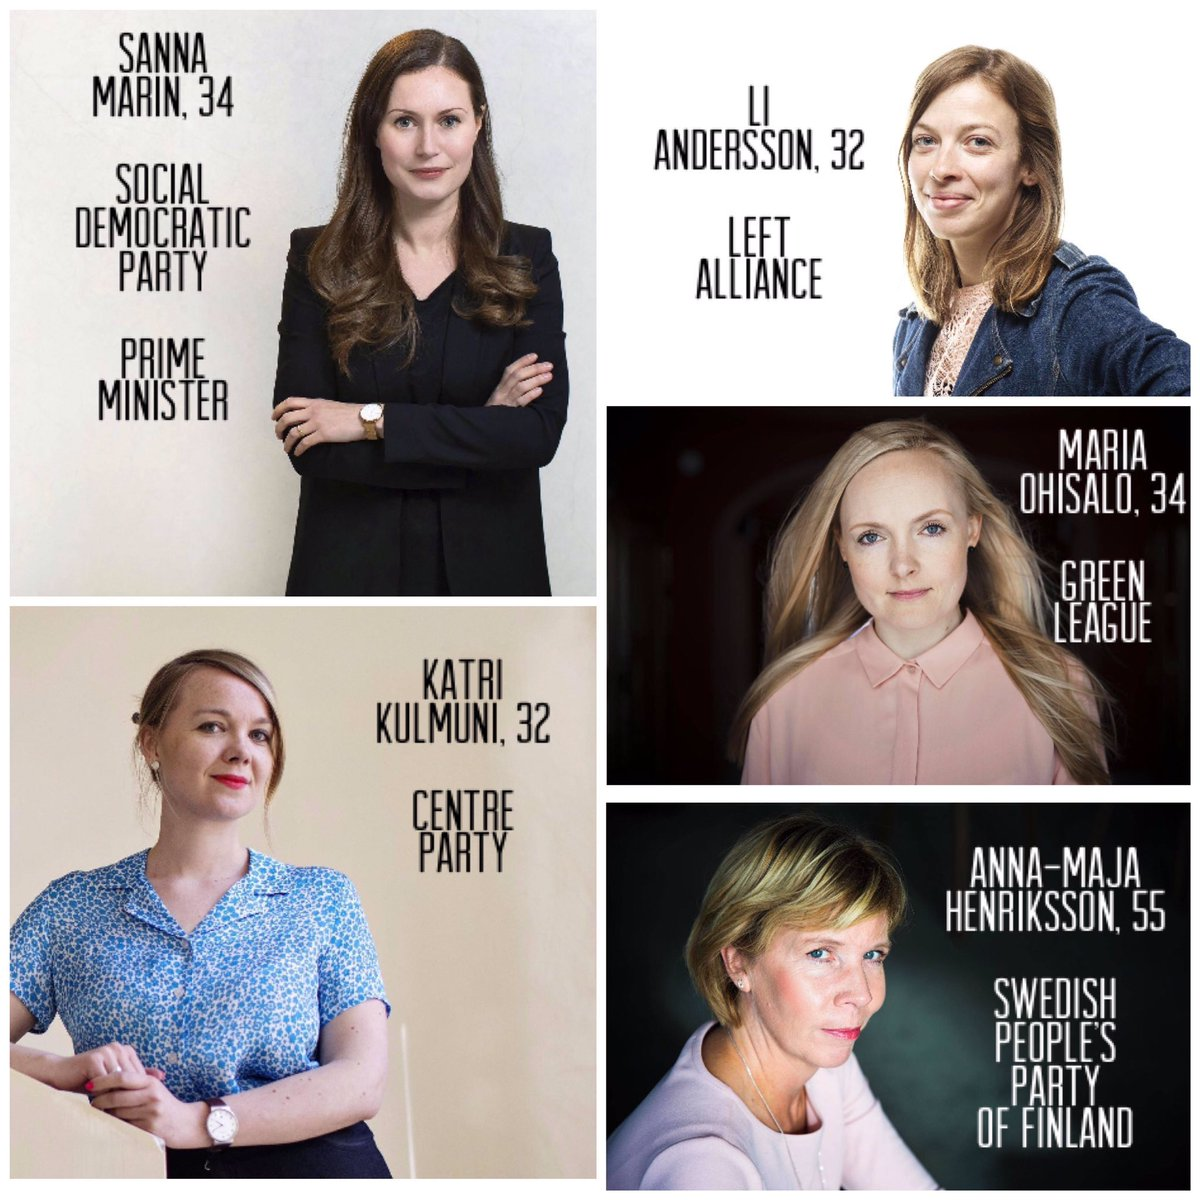 My party is not in government, but I rejoice that the leaders of the five parties in government are female. Shows that #Finland is a modern and progressive country. The majority of my government was also female. One day gender will not matter in government. Meanwhile pioneers.  <br>http://pic.twitter.com/dW8OMEOiqb